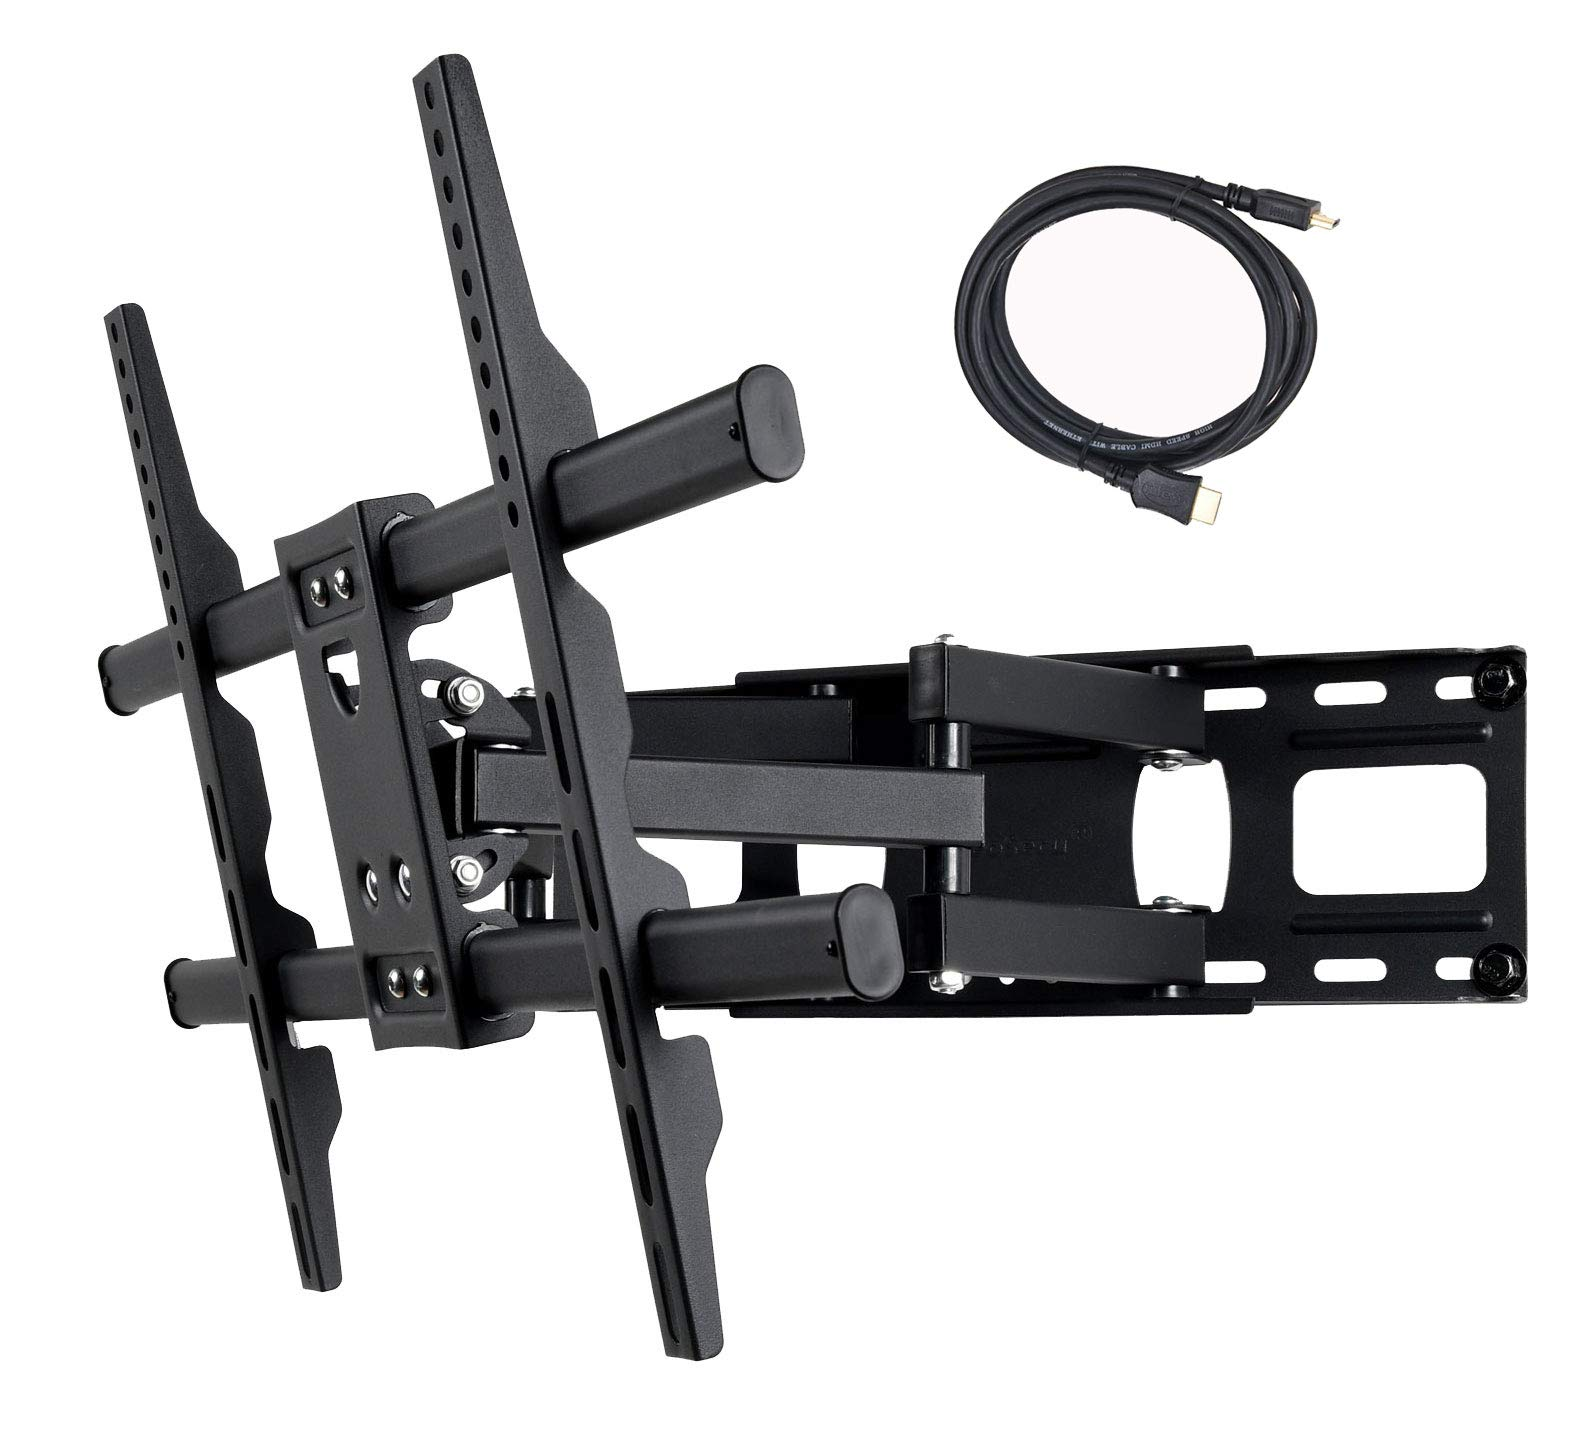 VideoSecu MW380B5 Full Motion Articulating TV Wall Mount Bracket for Most 37''-75'' LED LCD Plasma HDTV Up to 125 lbs with VESA 684x400 600x400 400x400 150x100mm, Dual Arm Pulls Out Up to 14'' AW9 by TV Wall Brackets